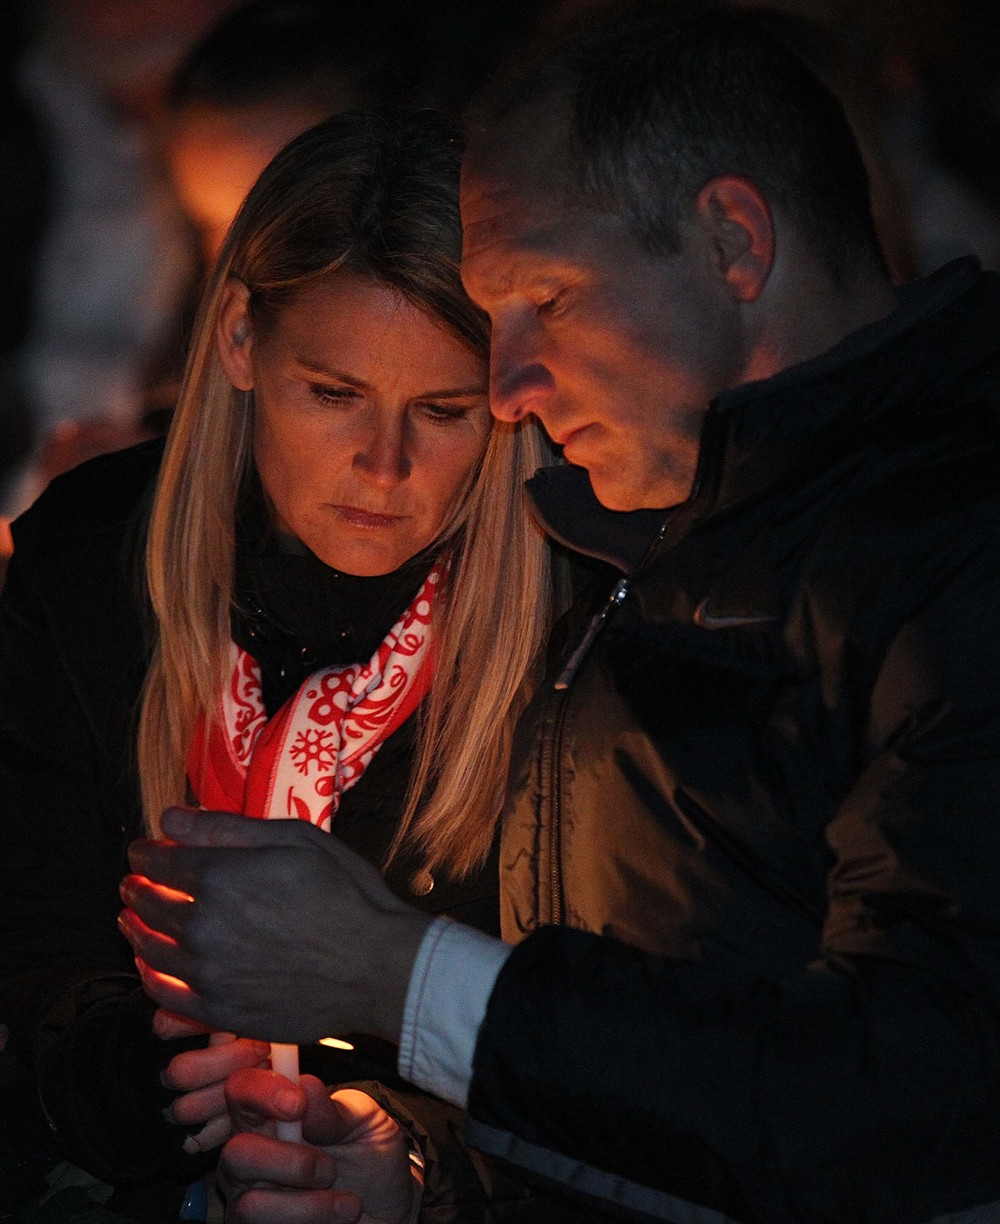 Sherry and Chance Potts attend a vigil for their teenage son, Landon who was killed in a car accident a few days before.